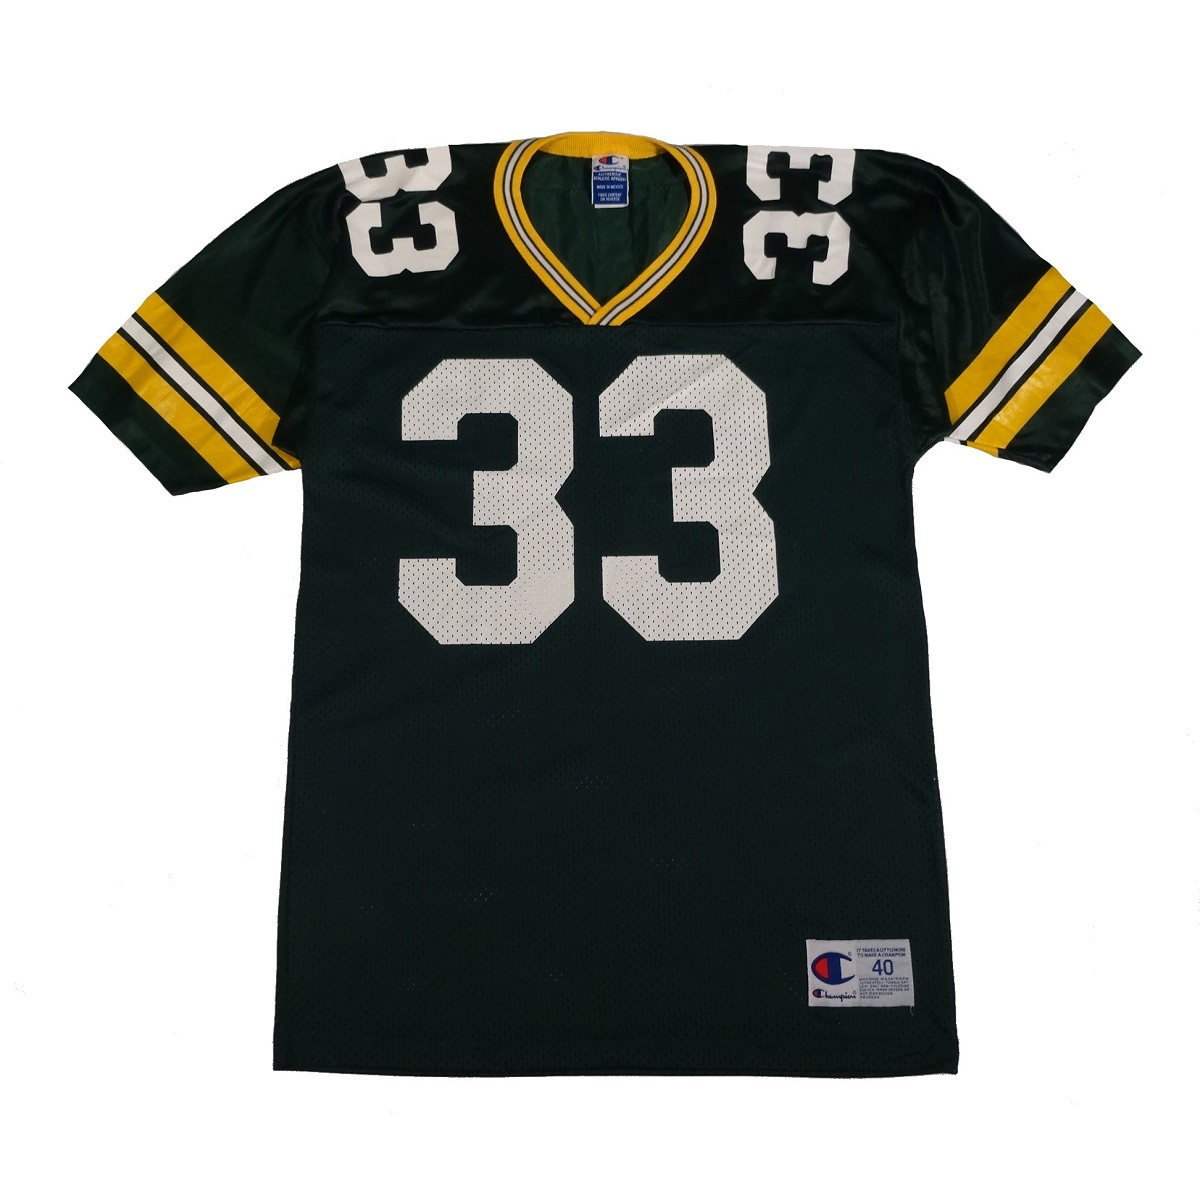 william henderson green bay packers champion jersey front